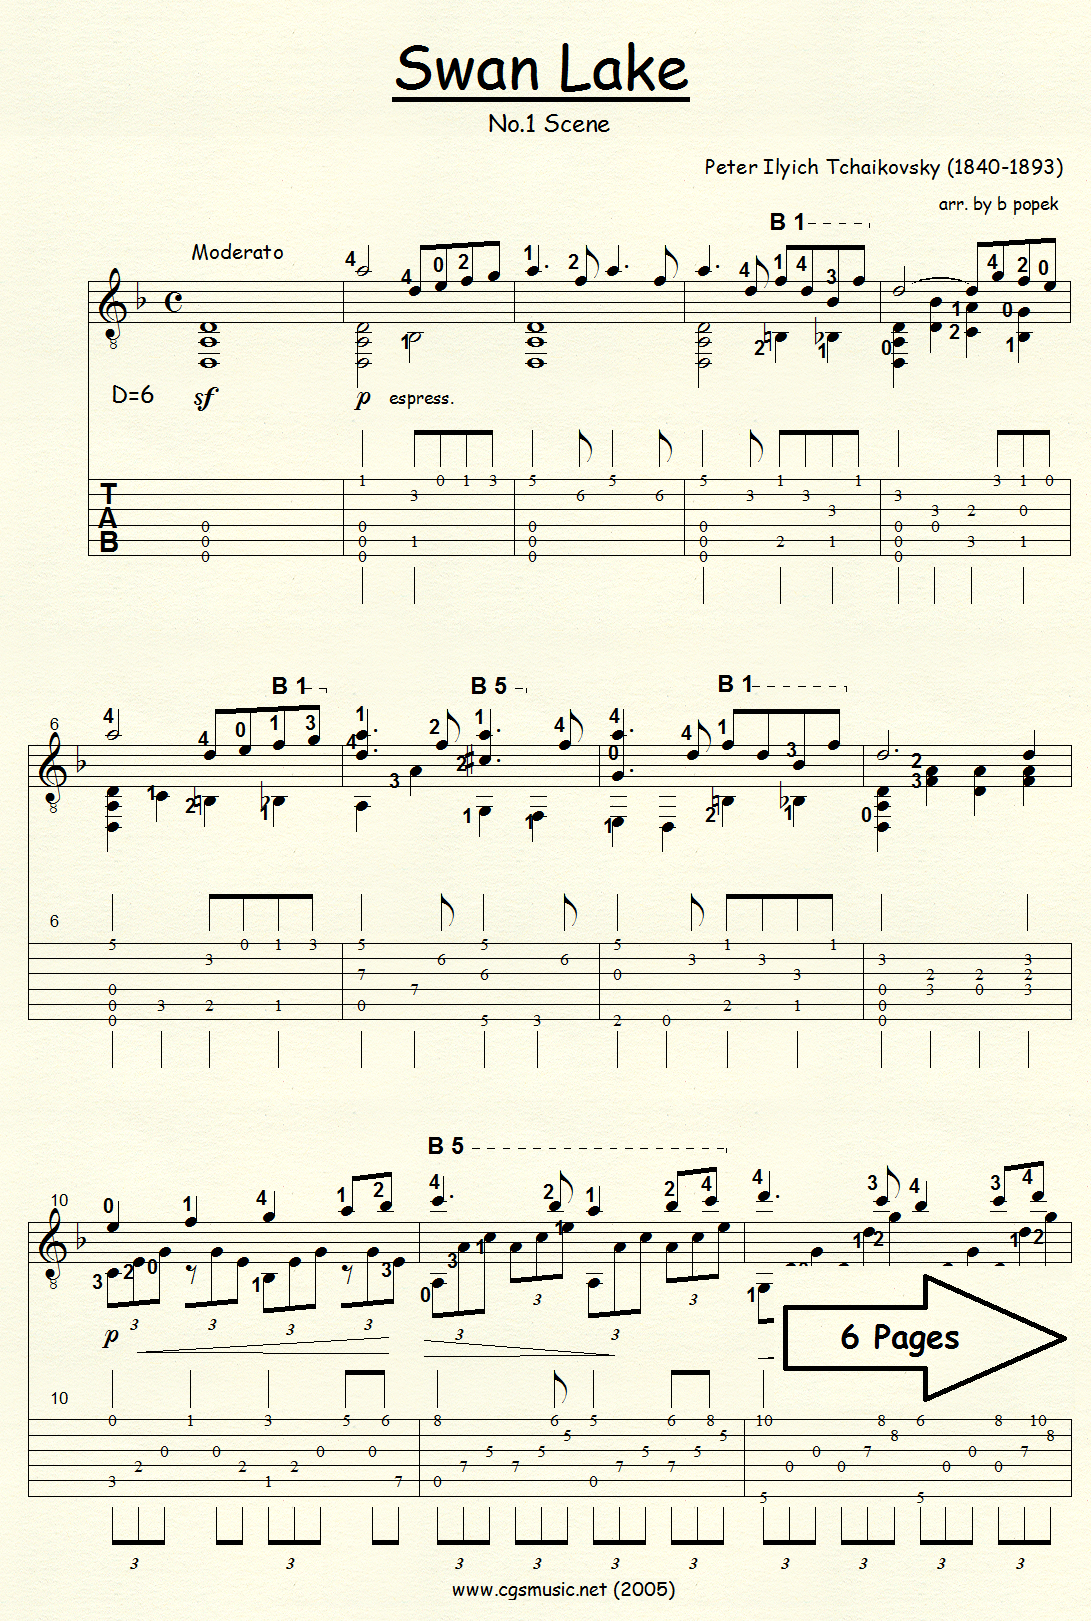 Swan Lake No. 1 (Tchaikovsky) for Classical Guitar in Tablature